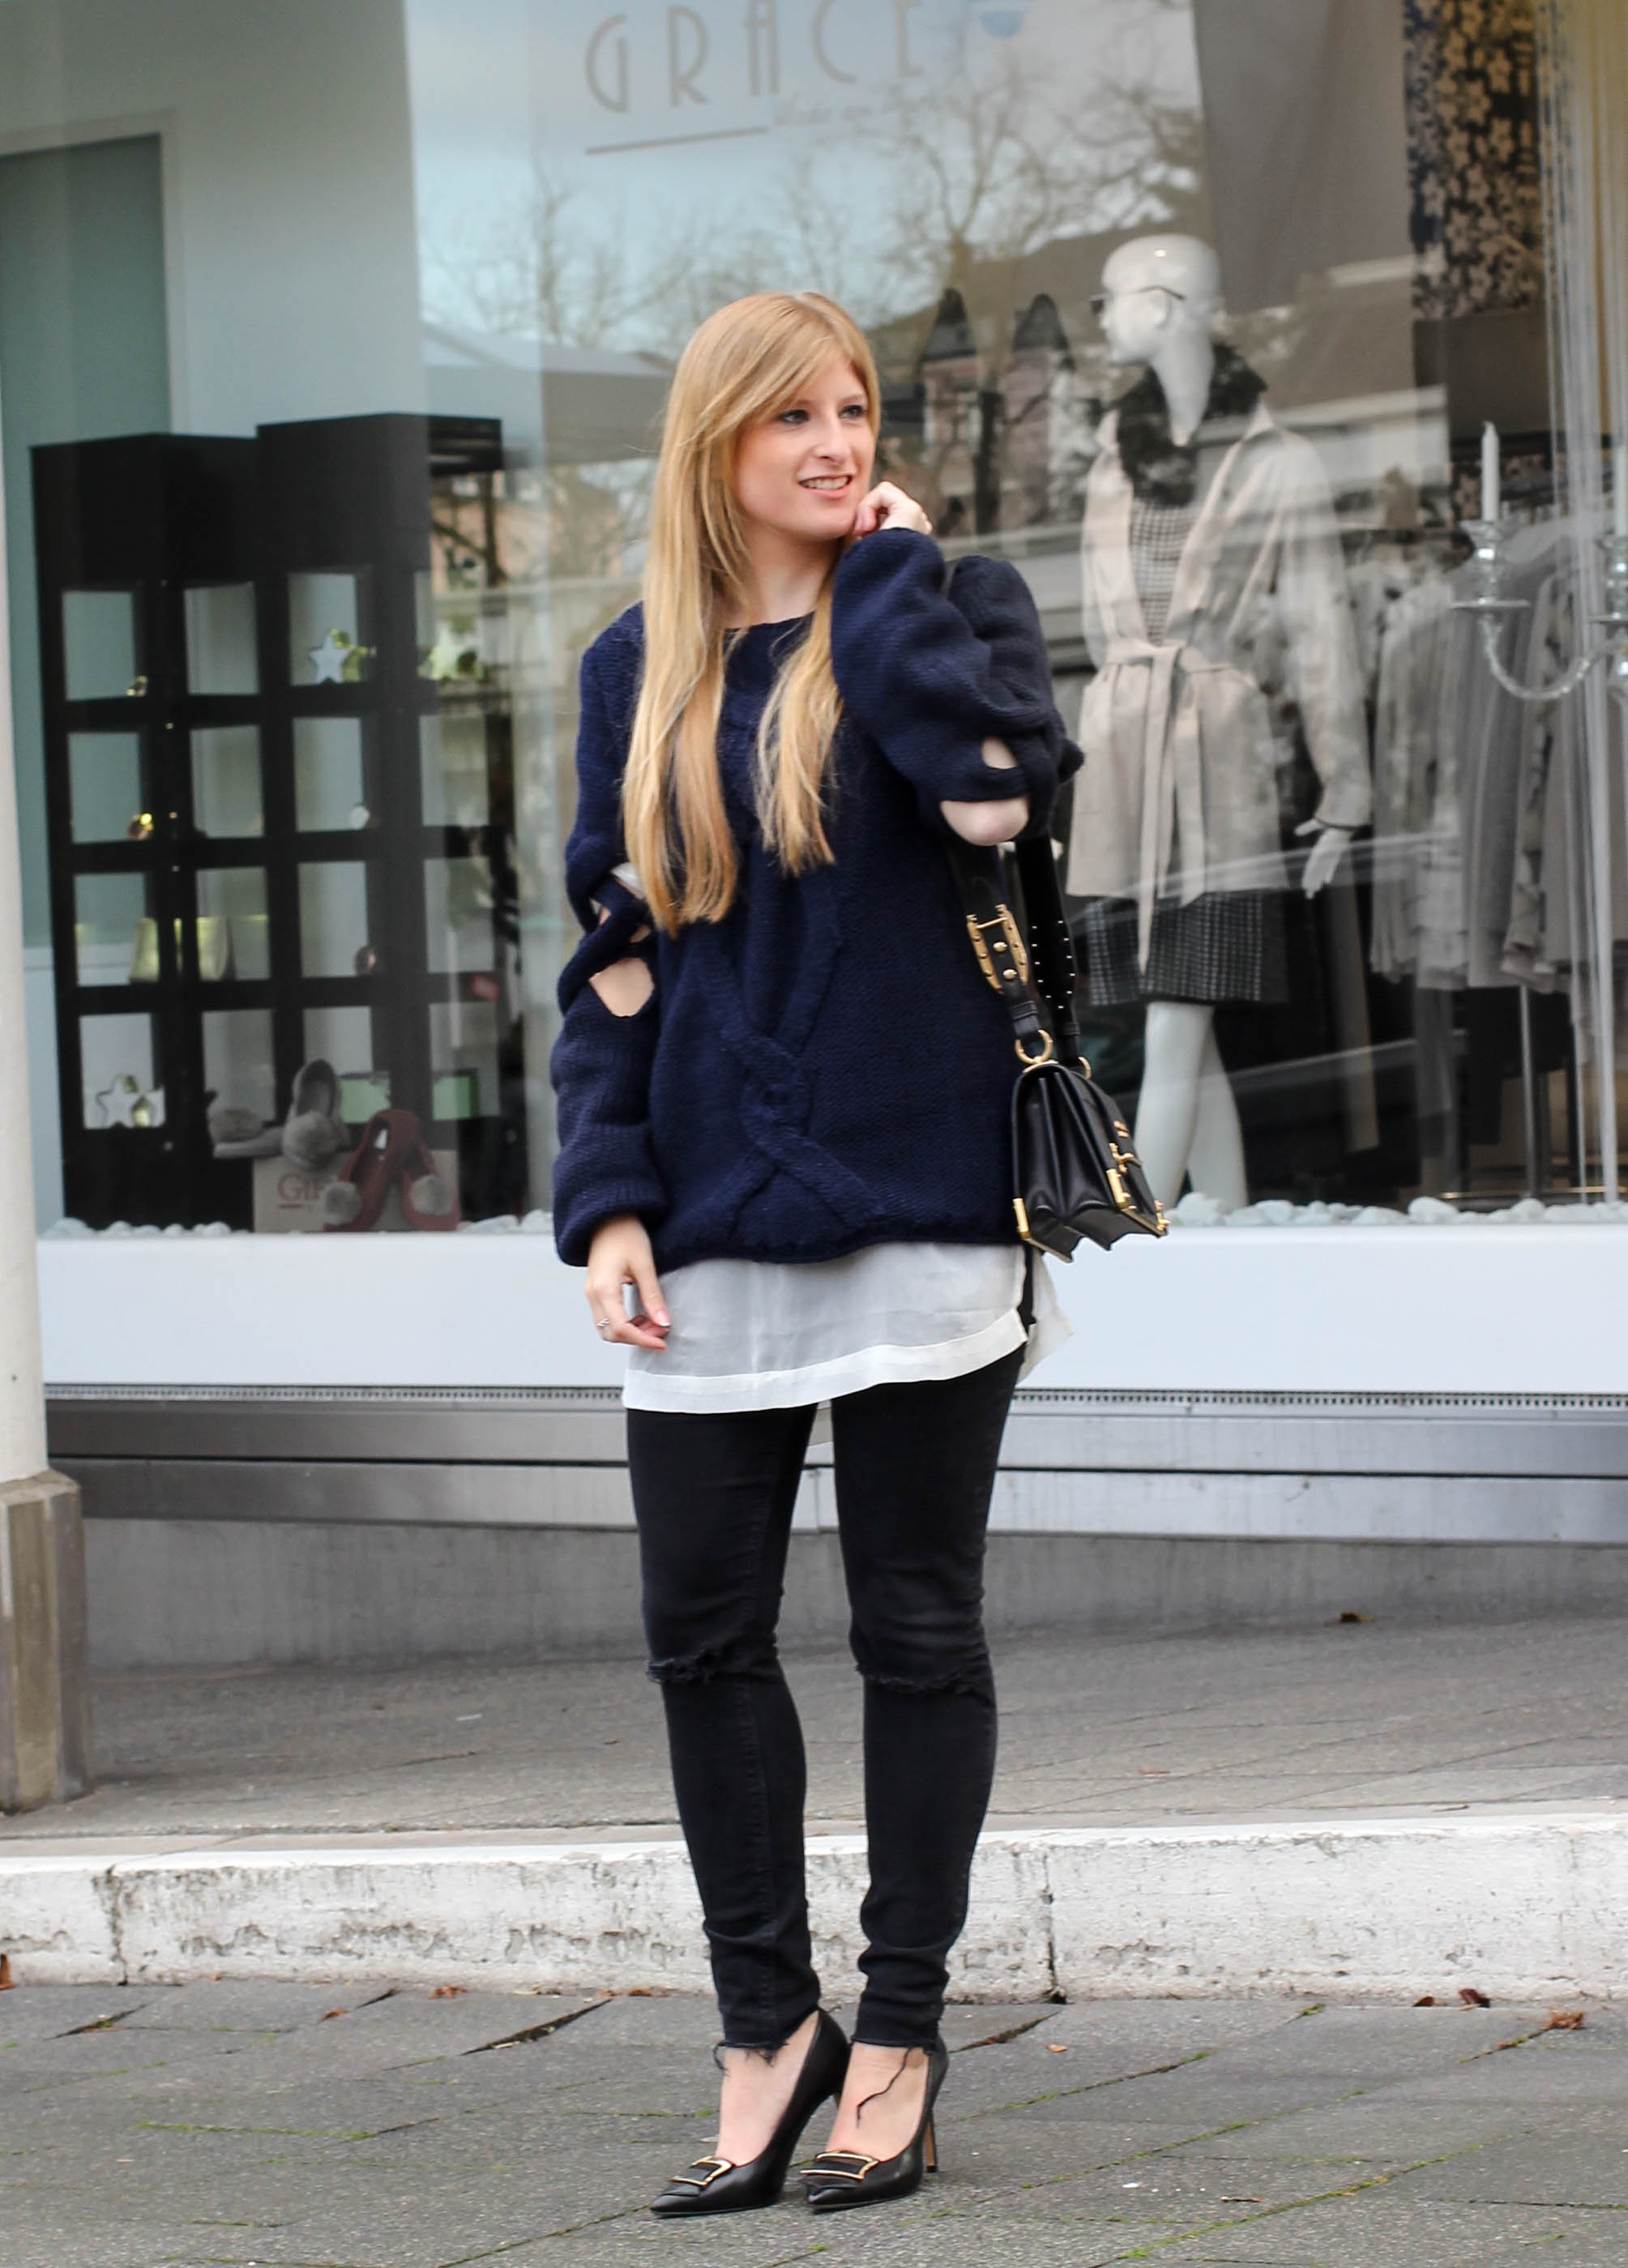 Streetstyle Wollpullover mit Cut-Outs Zopfmuster Asos Prada Cahier Bag Modeblogger 1